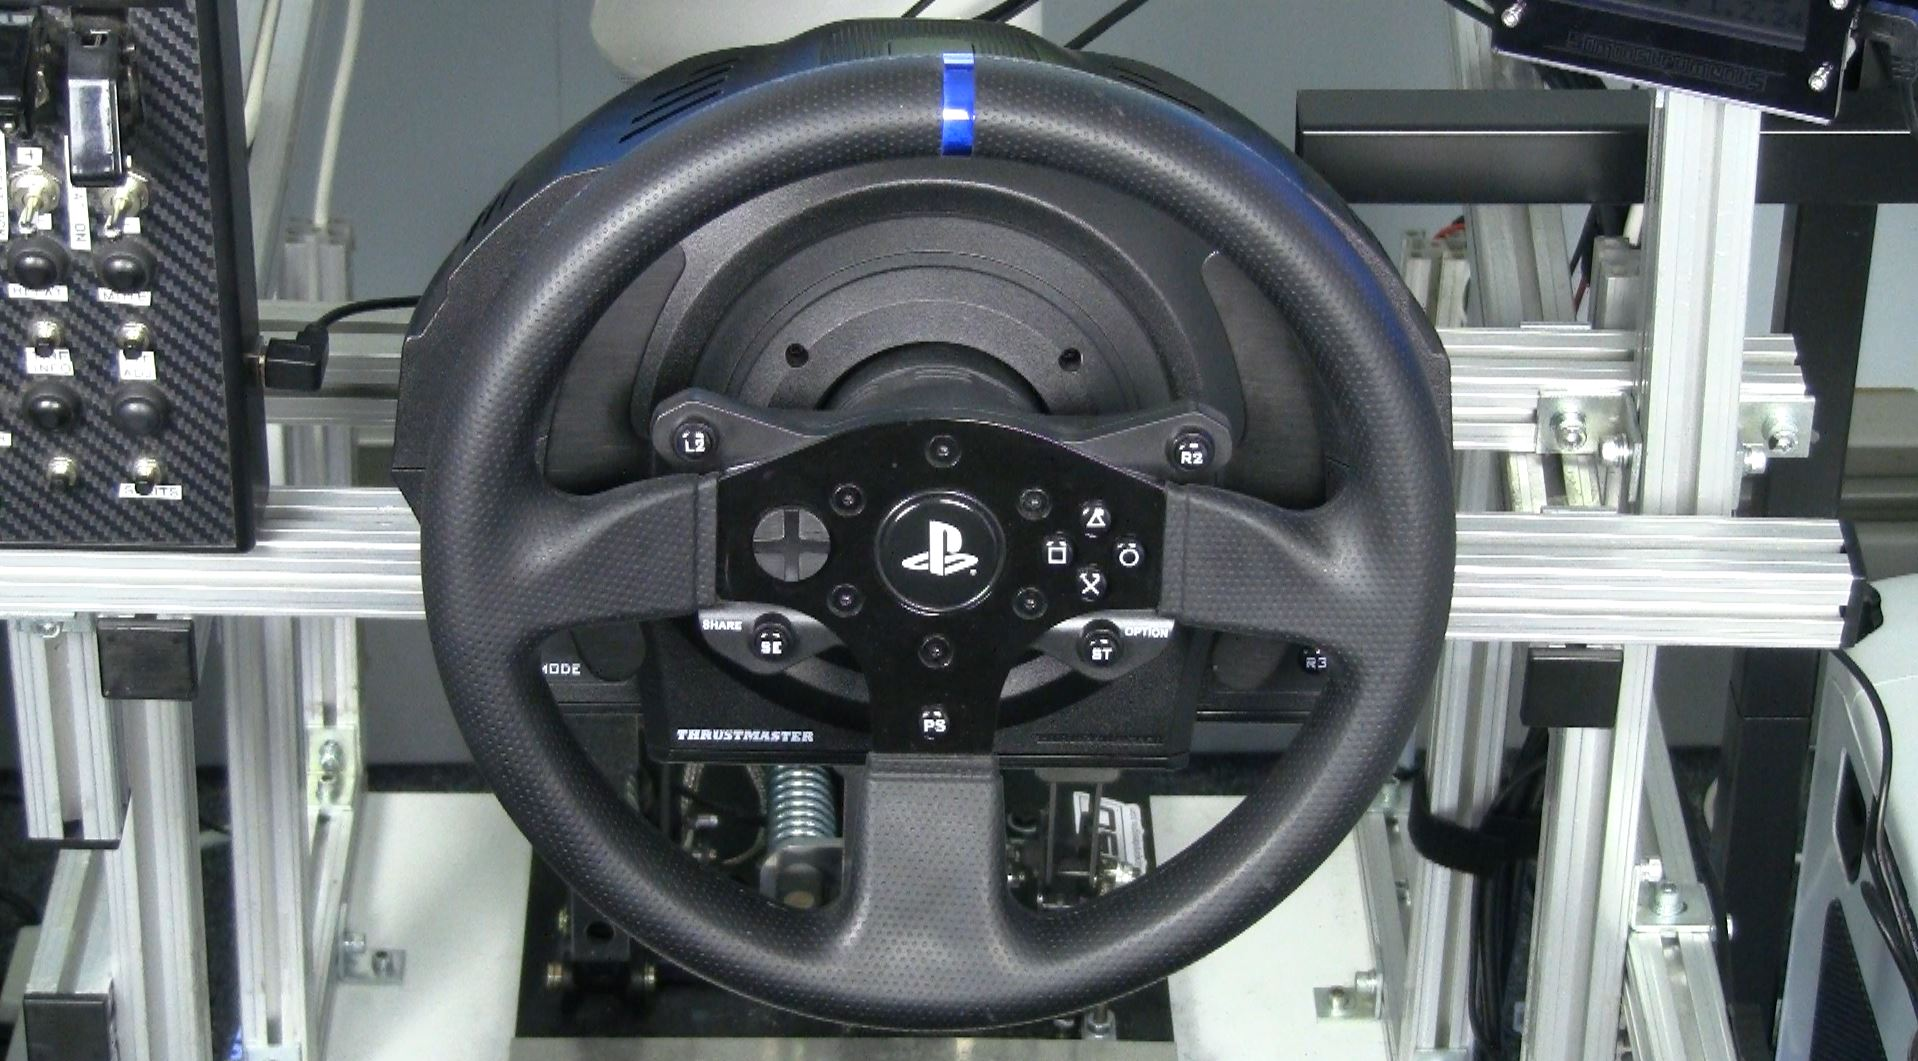 Thrustmaster T300 RS PC Review